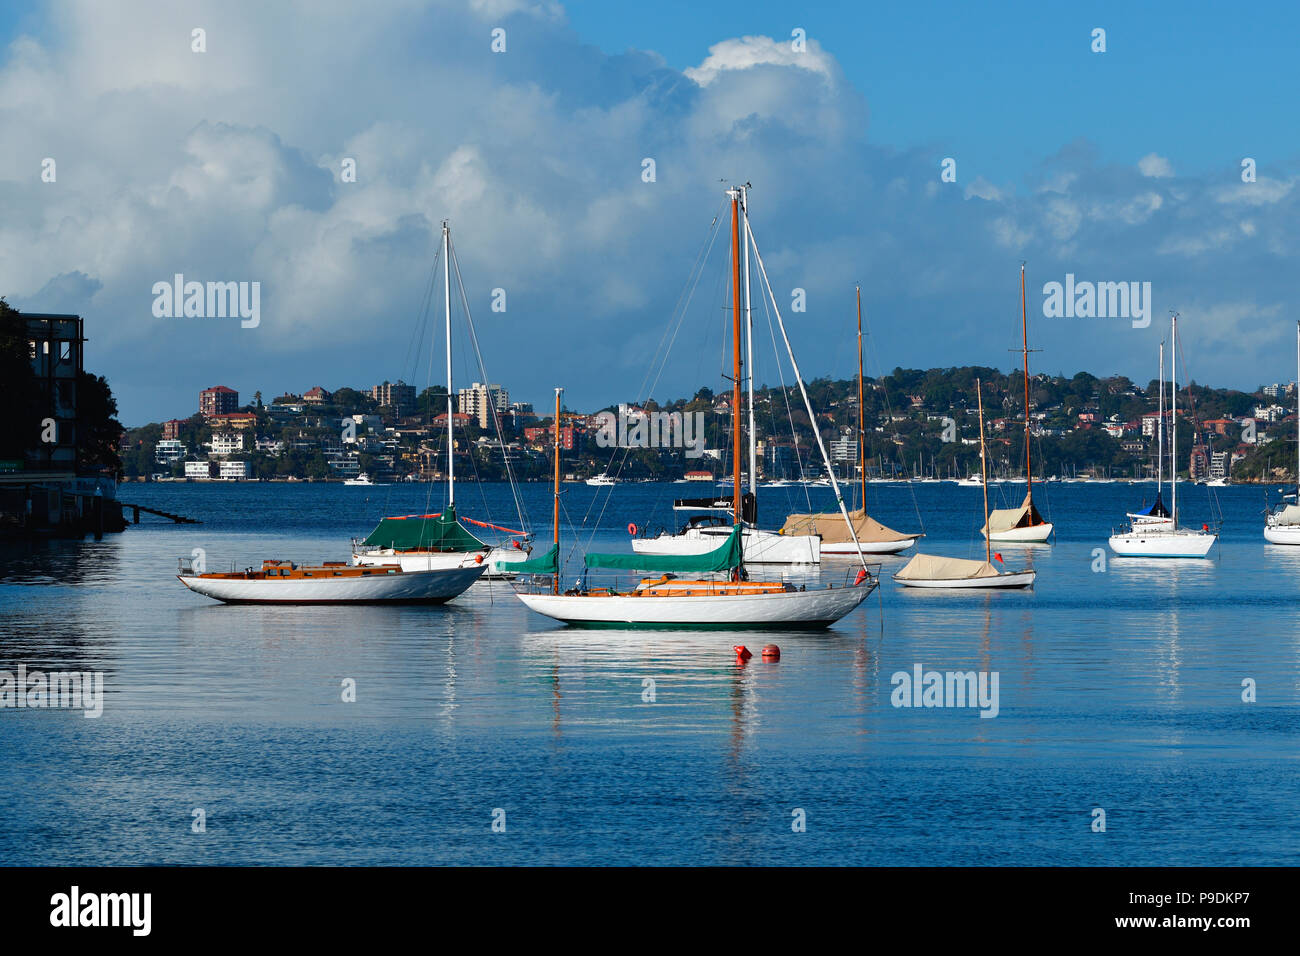 Boats Moored - Stock Image